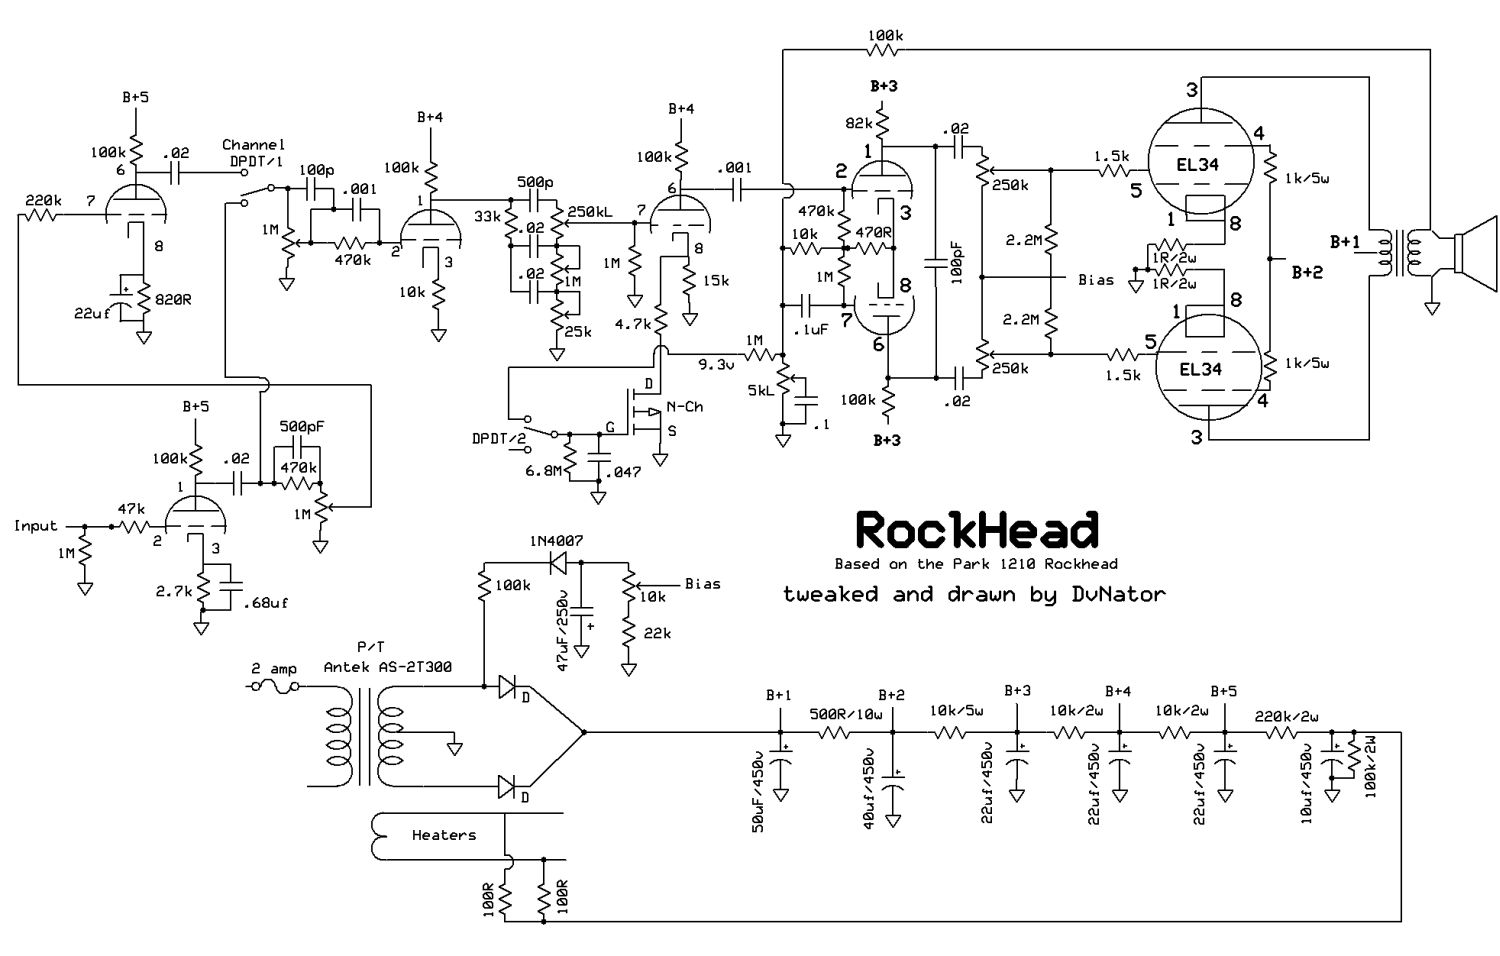 Park Rock Head – DvNator's Amp Projects Jcm Schematic on slo-100 schematic, bass tube preamp schematic, circuit diagram, jtm45 schematic, bassman schematic, marshall schematic, block diagram, 1987x schematic, functional flow block diagram, zvex sho schematic, 3pdt schematic, amp schematic, jcm 900 schematic, soldano schematic, ac30 schematic, irig schematic, overdrive schematic, technical drawing, transformer schematic, fender schematic, peavey schematic, piping and instrumentation diagram, tube map, 5e3 schematic, dsl schematic, one-line diagram, guitar schematic,